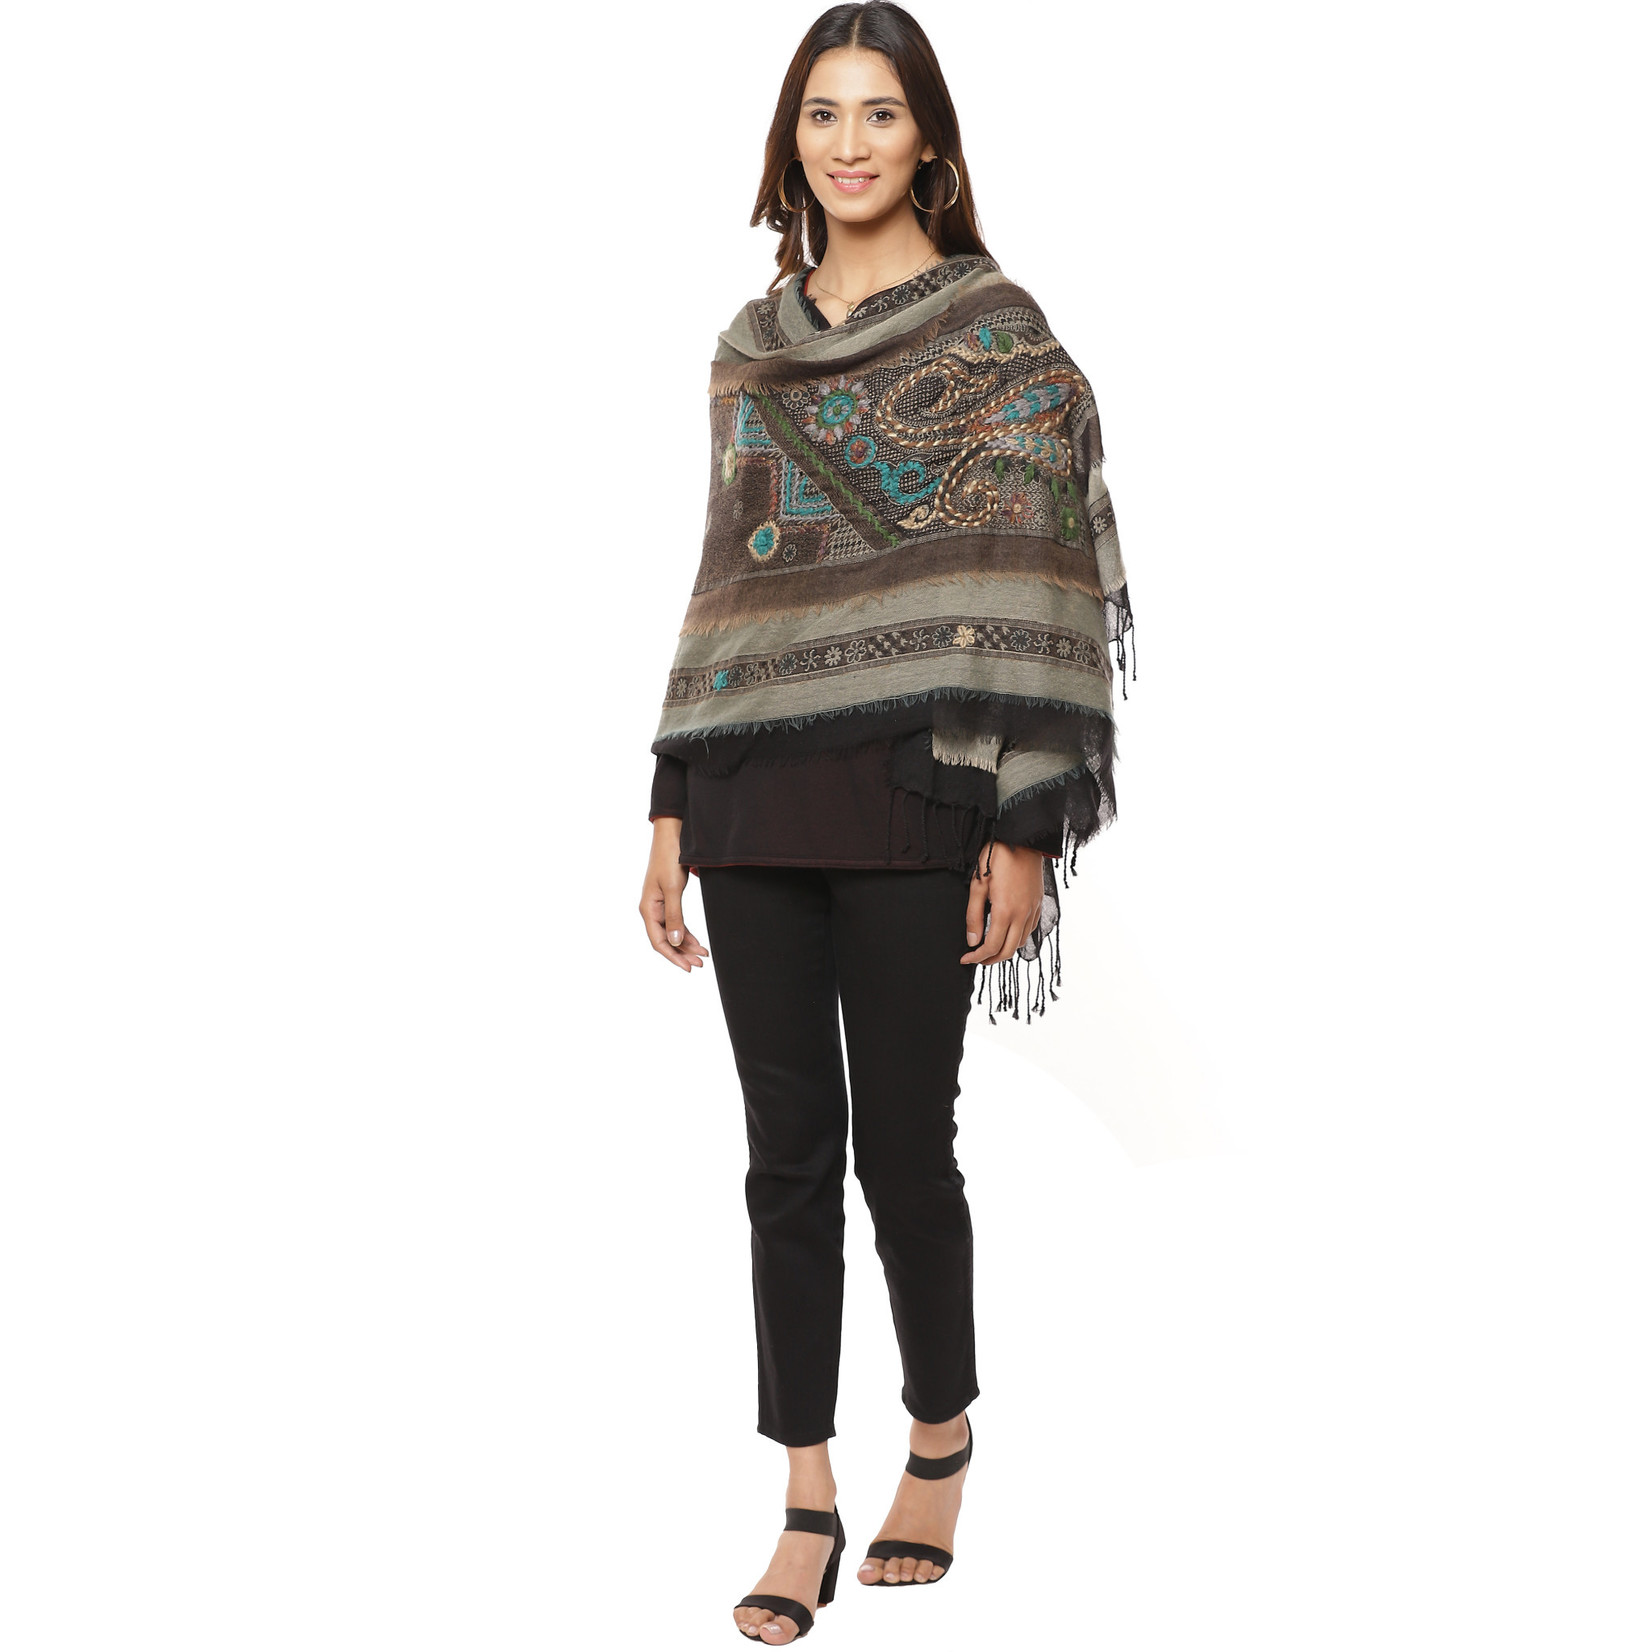 Parsley and Sage Bianca Brown Embroidered Wool Wrap